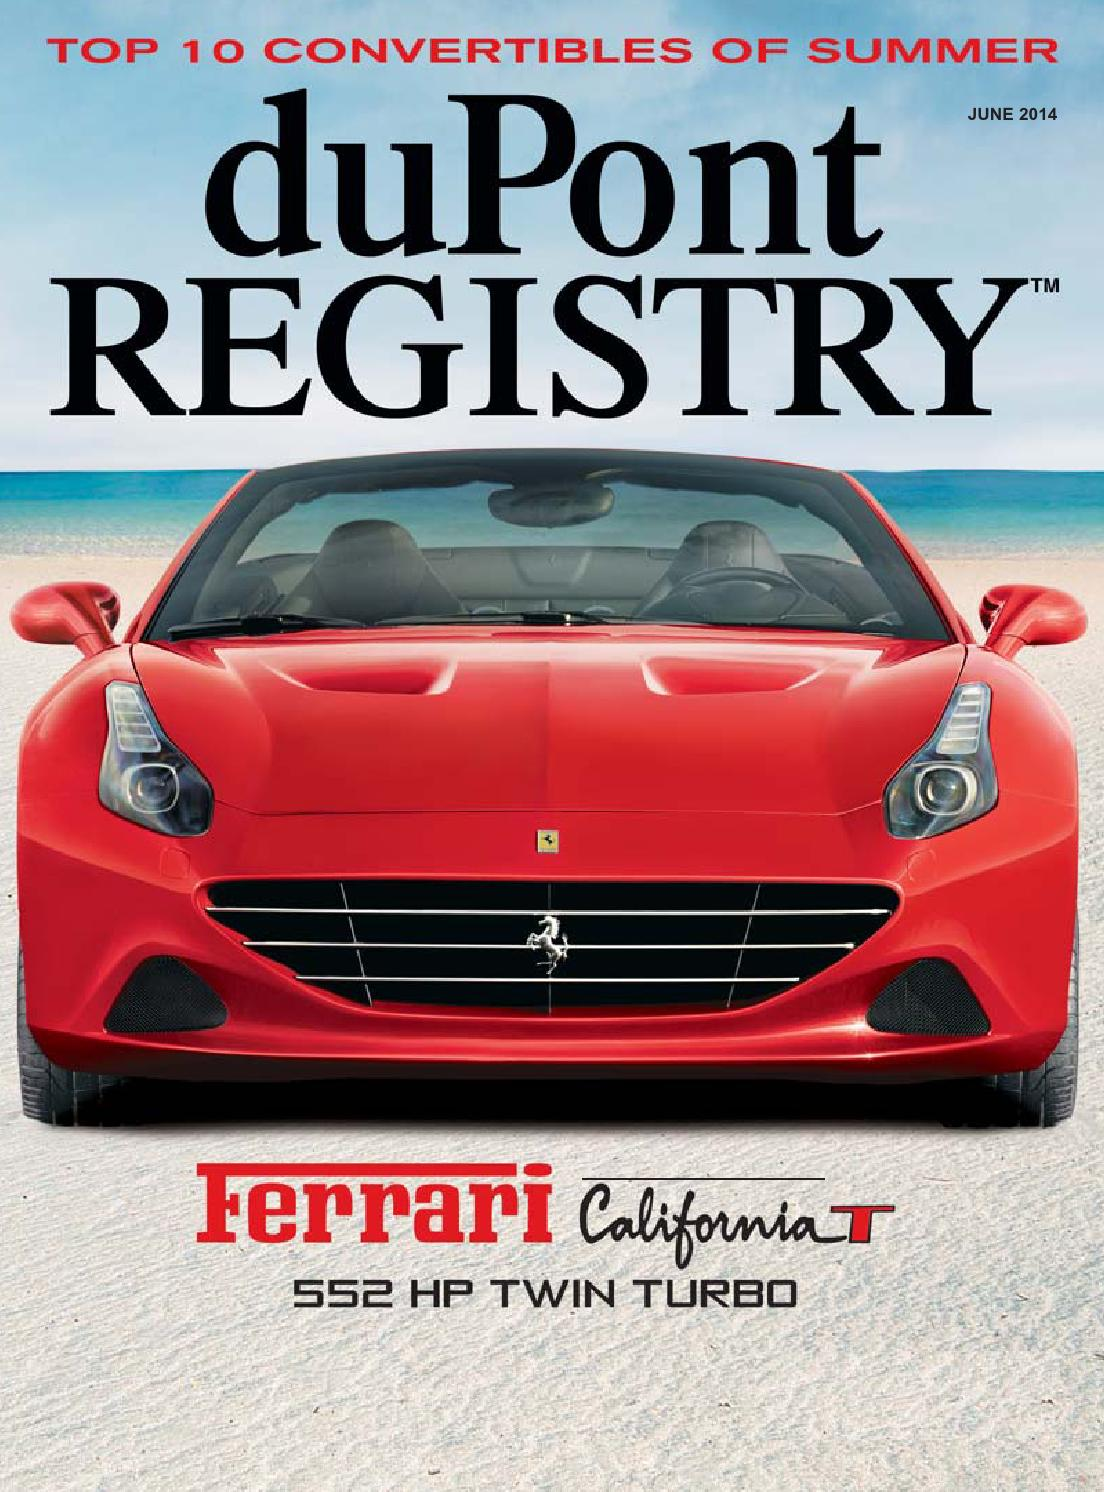 duPontREGISTRY Autos June 12 by duPont REGISTRY   issuu